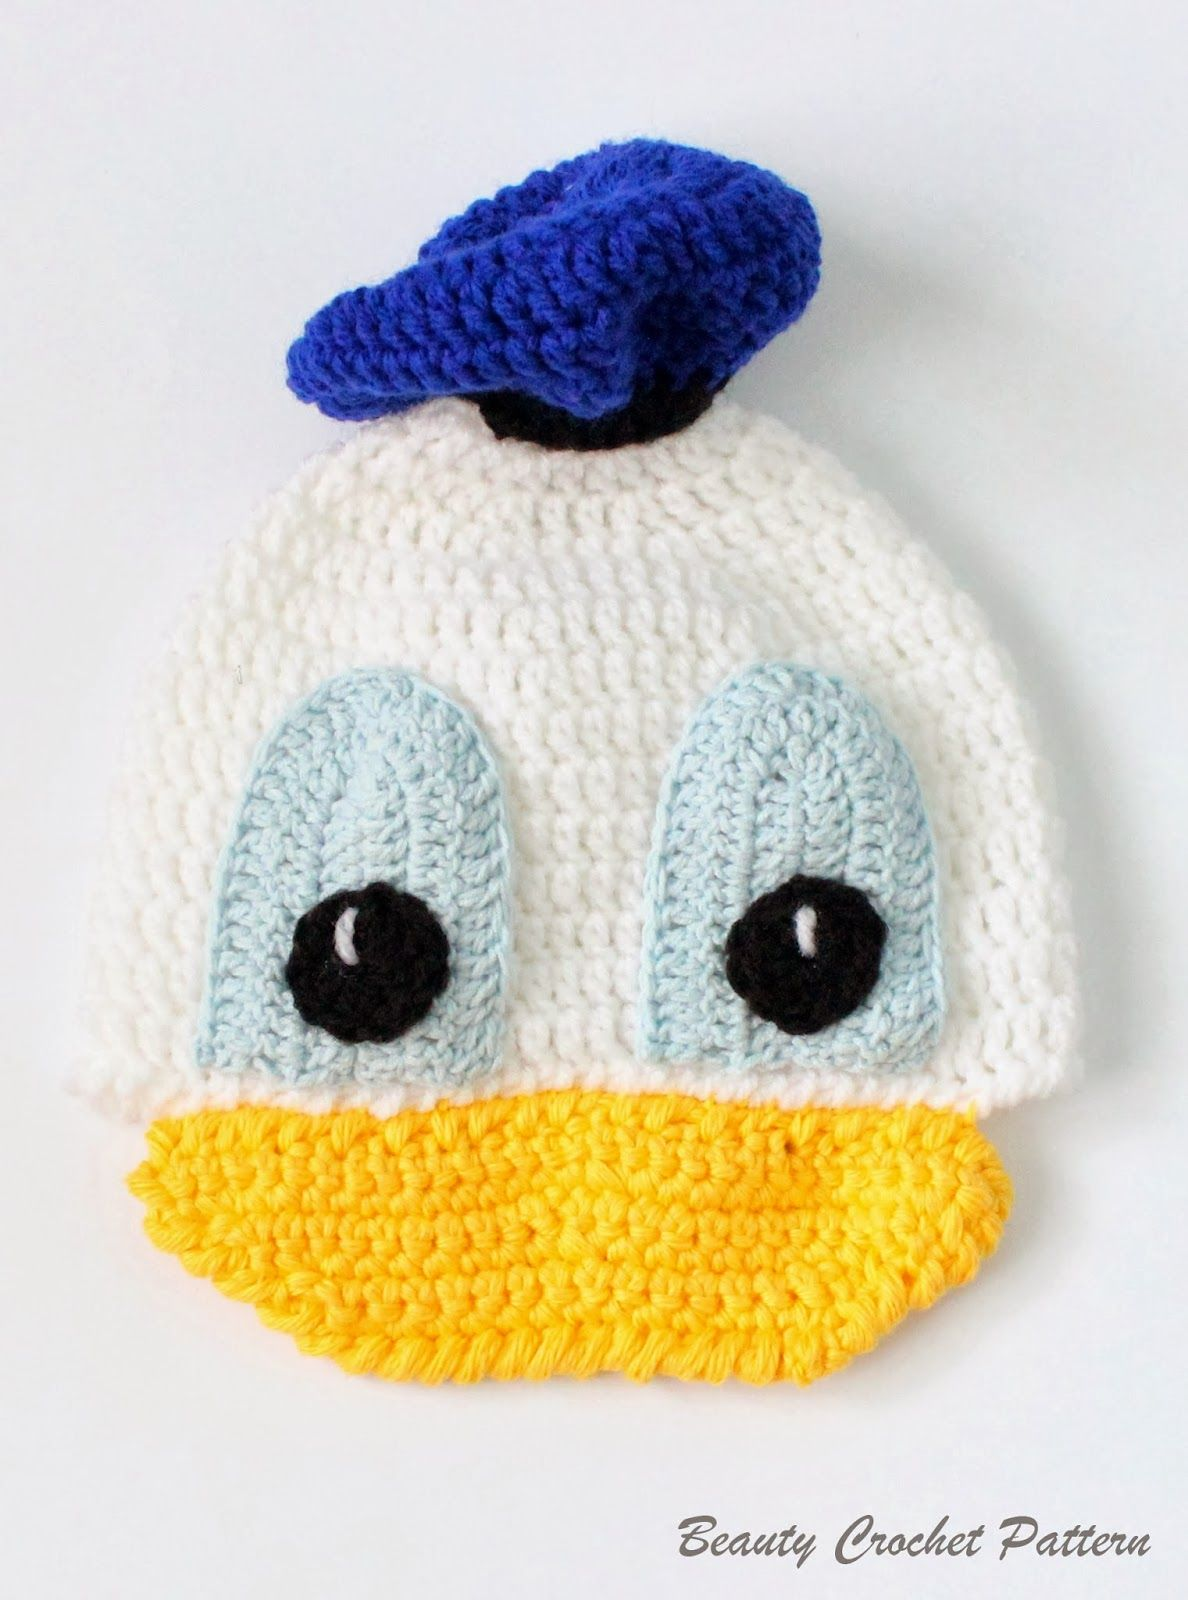 Donald Crochet Hat Pattern | Crochet n knit | Pinterest | Gorros ...